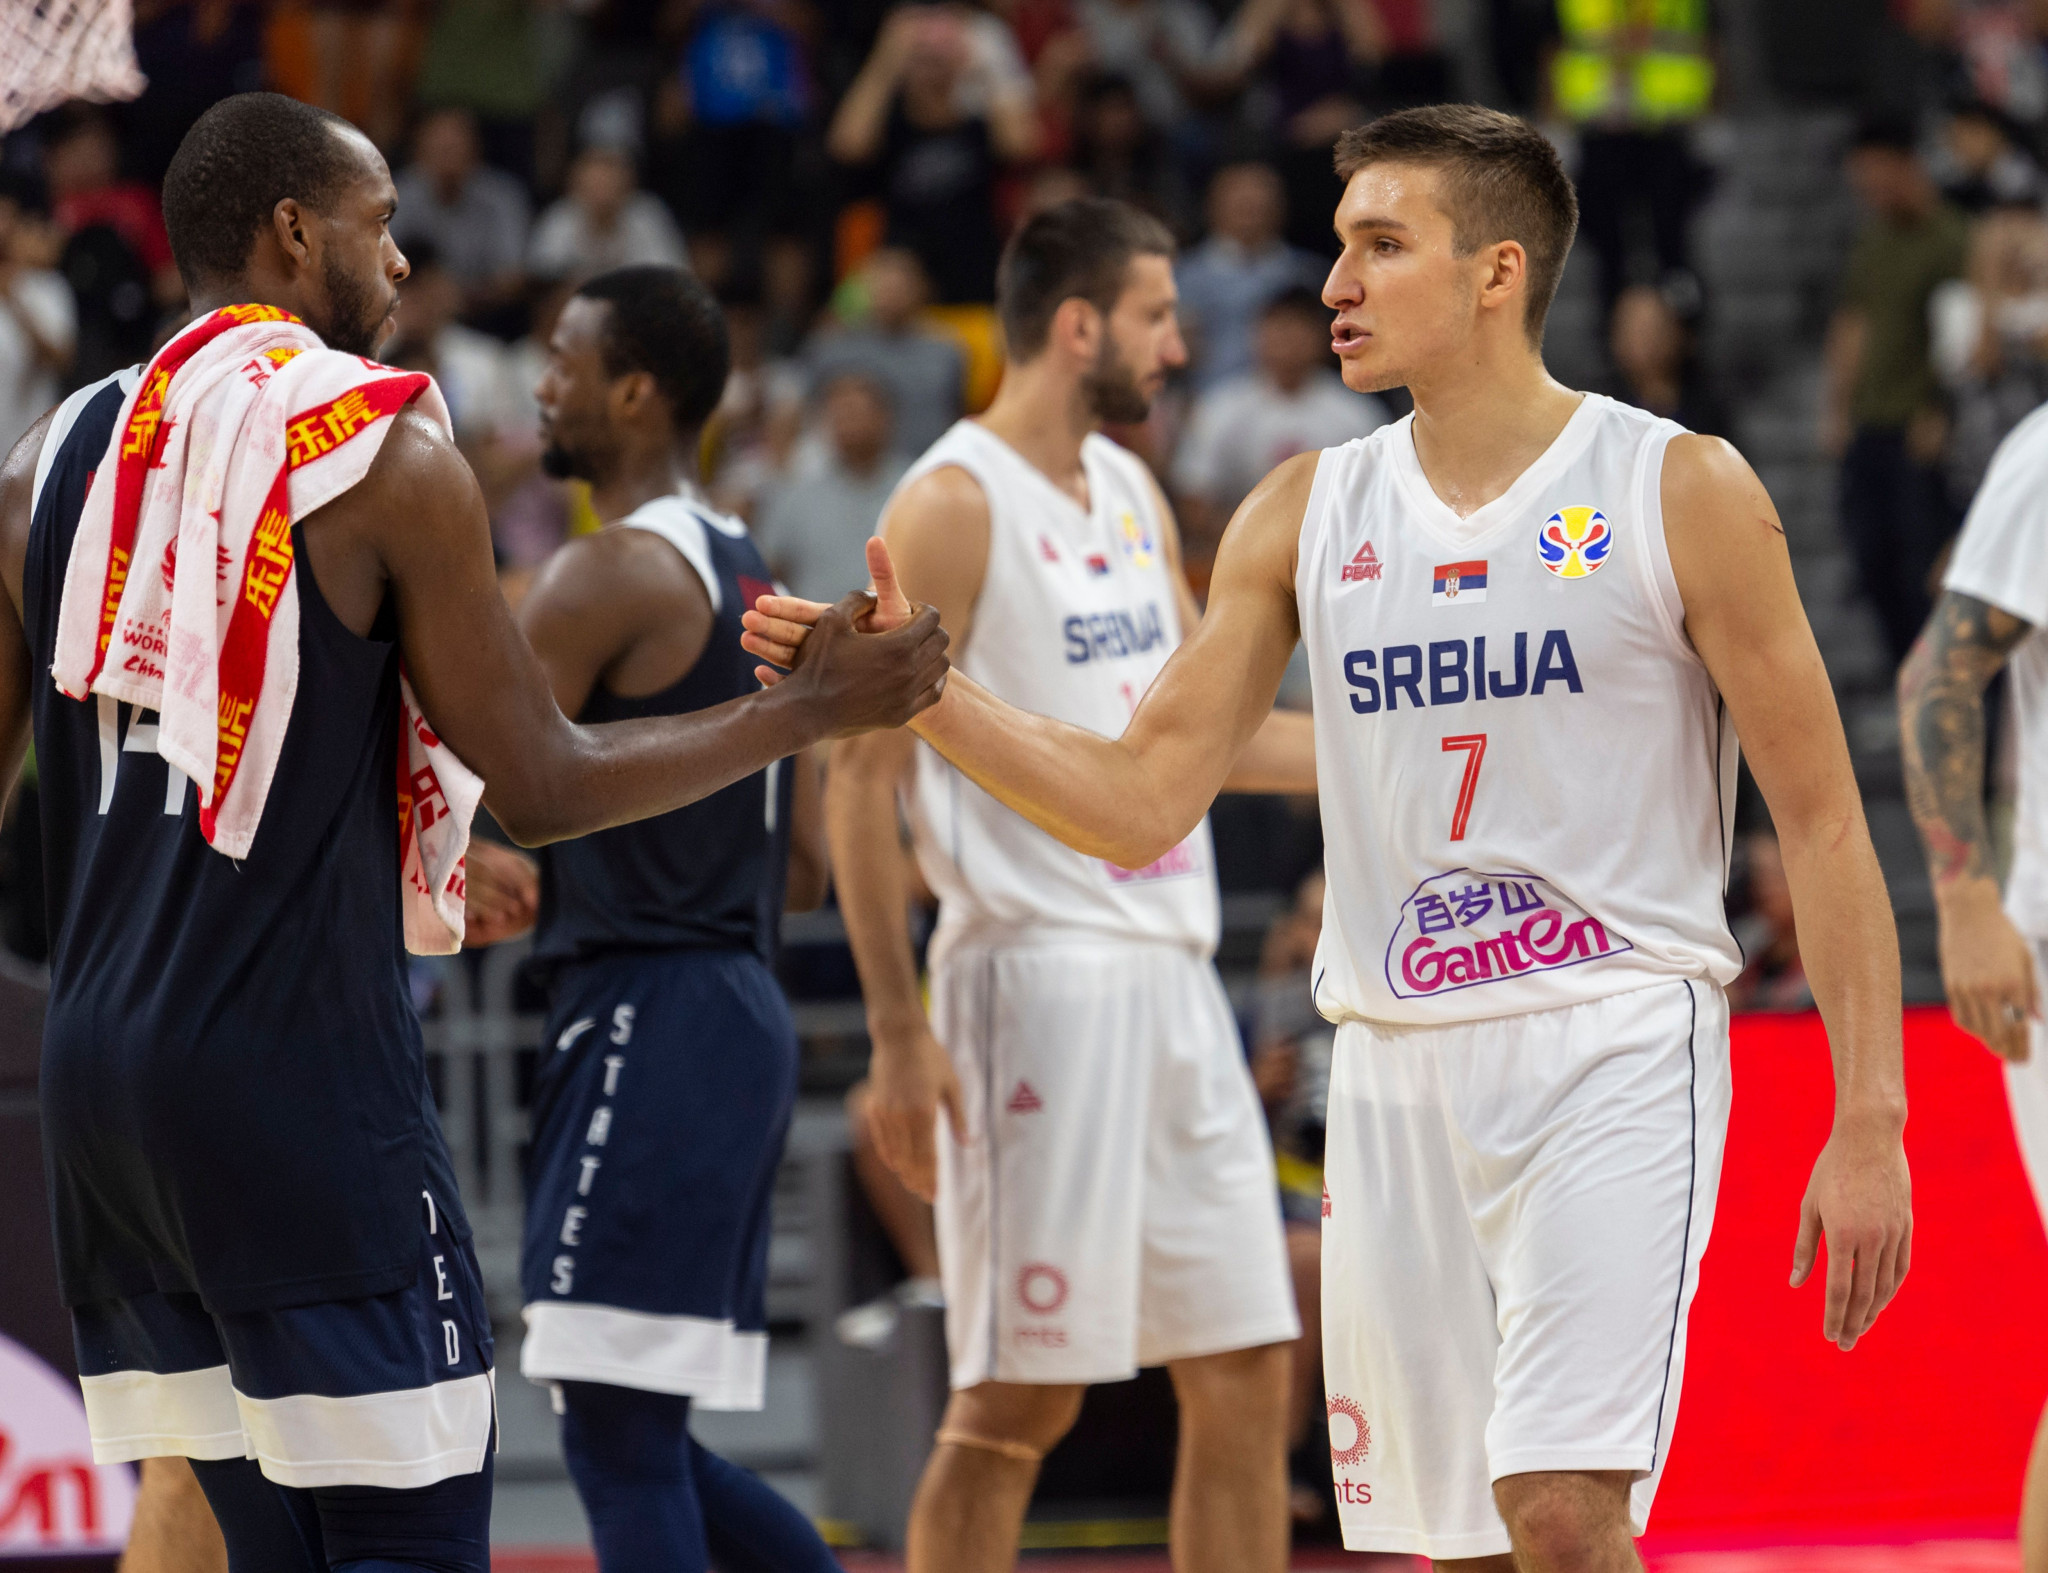 United States to play for seventh place at FIBA World Cup after Serbia defeat